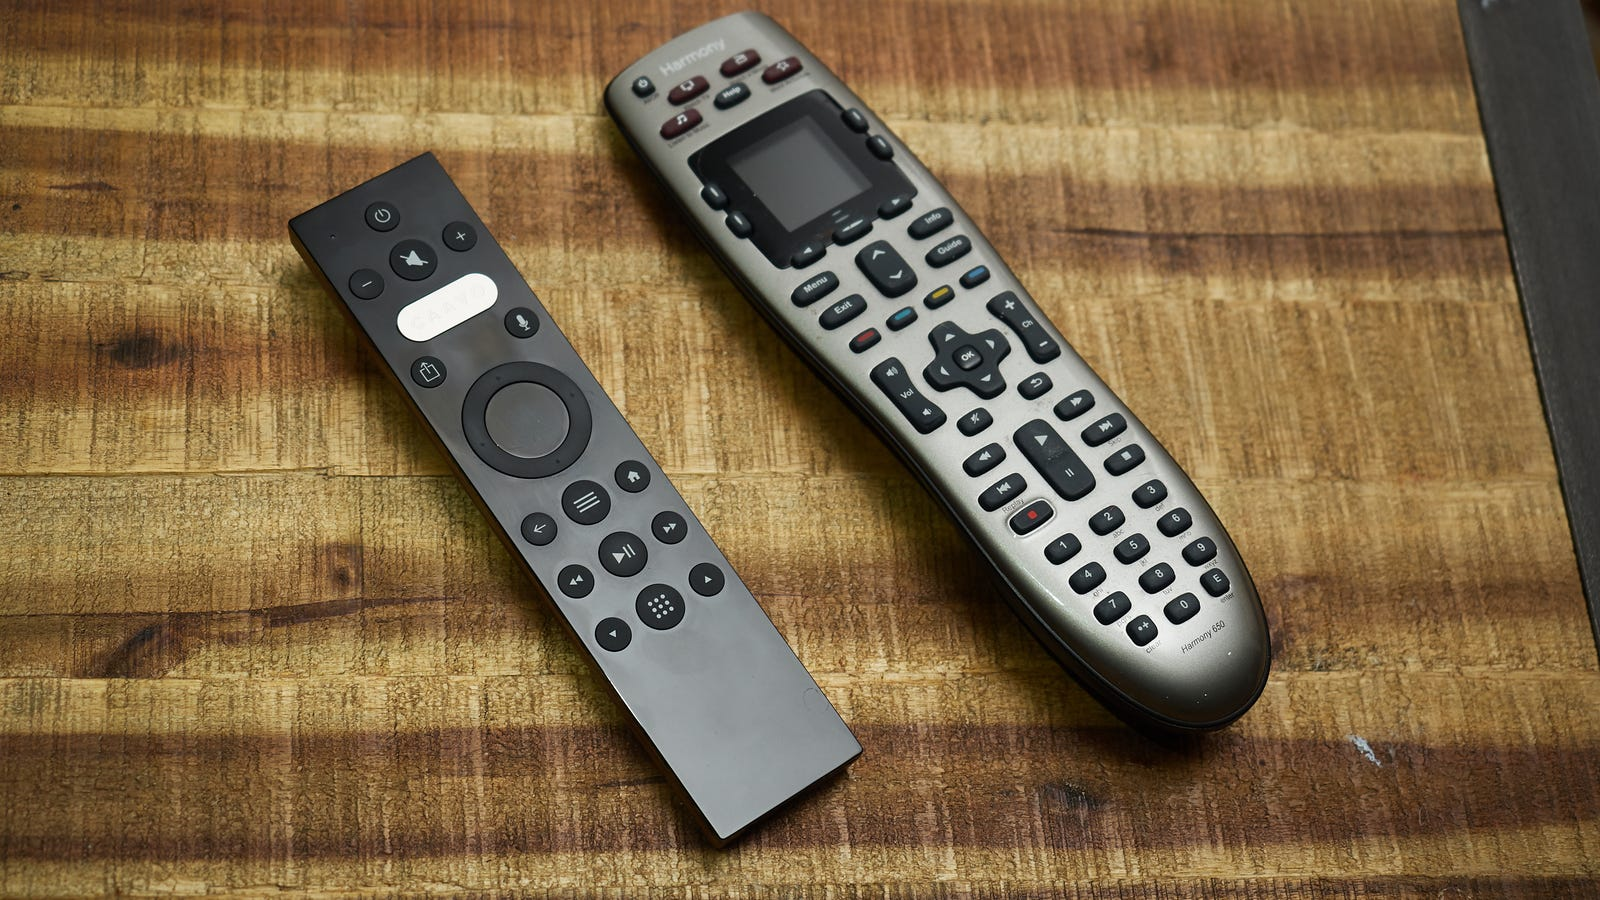 The Caavo remote versus my perfectly fine $70 Harmony 650 from Logitech.